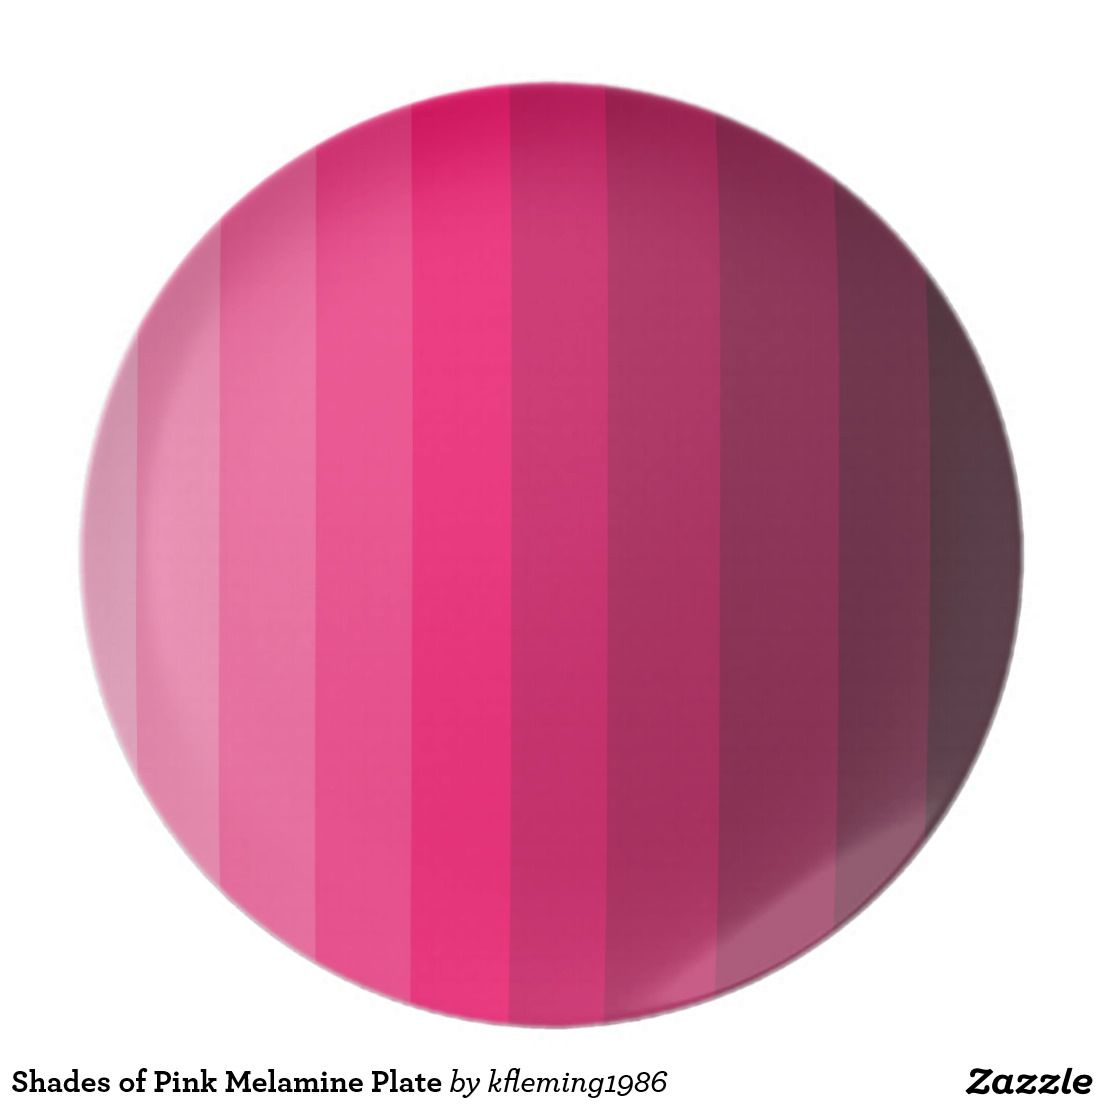 Shades of Pink Melamine Plate